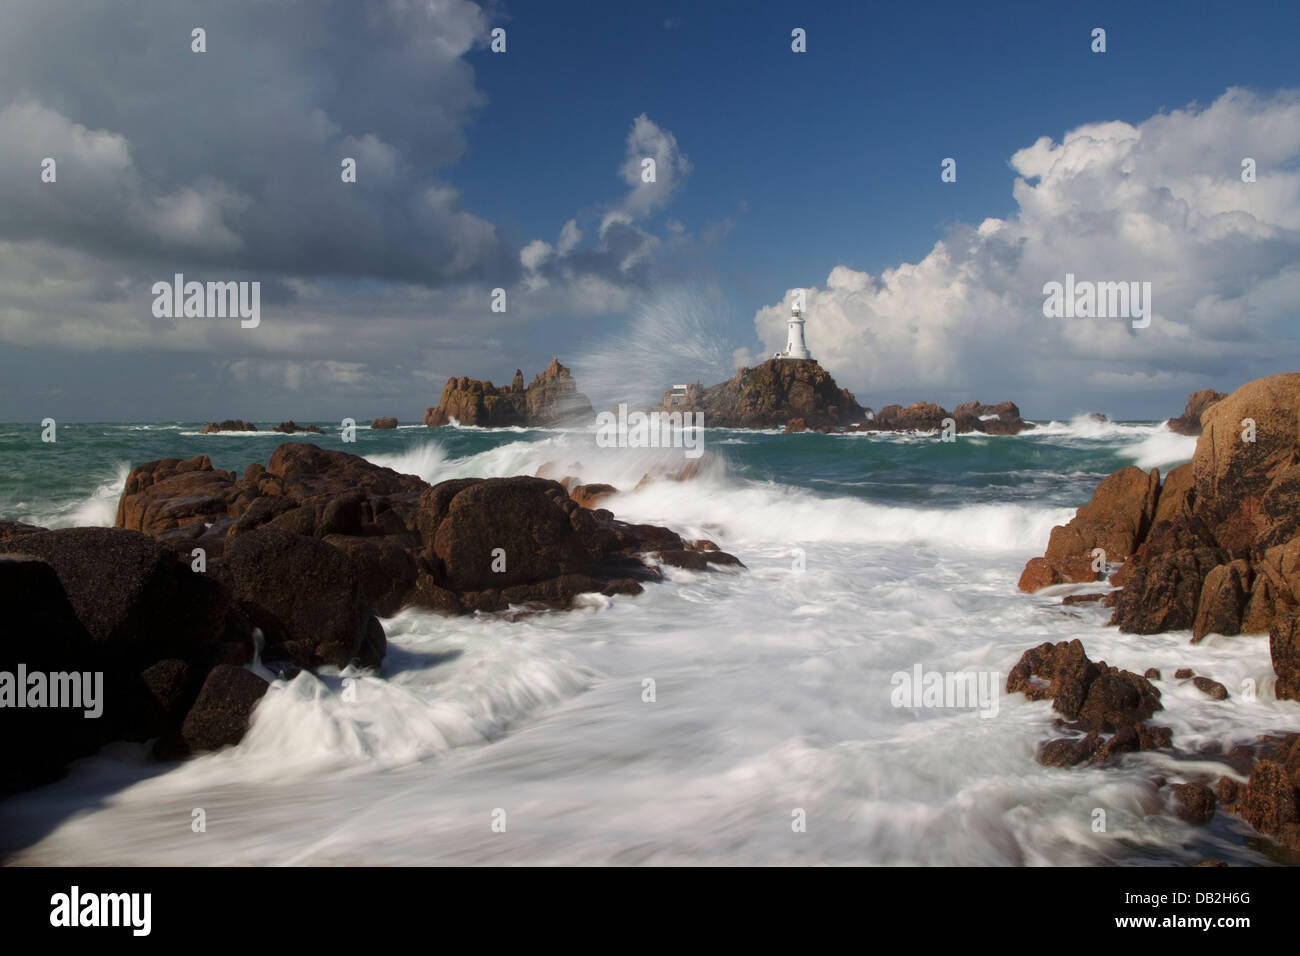 Corbiere Lighthouse - showing tide over causeway Jersey Channel Islands, UK LA005935 - Stock Image